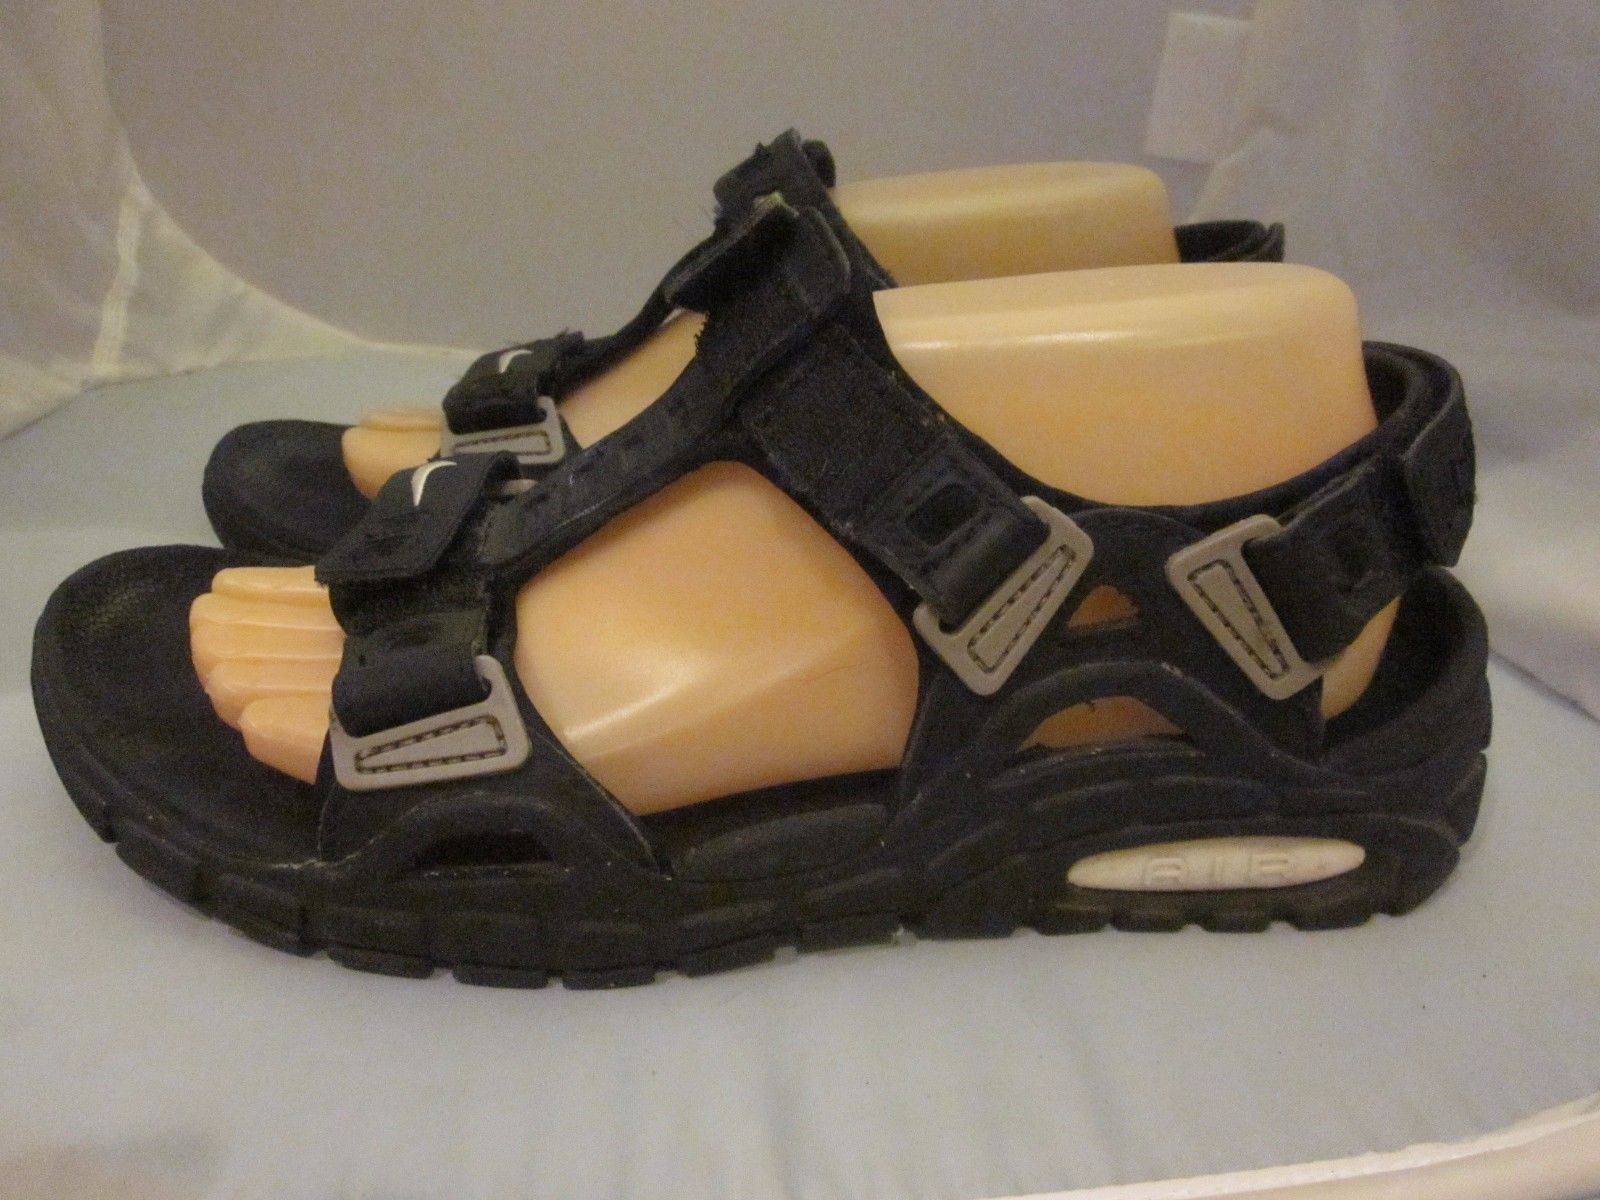 0a4d8161db84f8 Image result for NIKE ACG Air Deschutz Sandals Shoes Walking Hiking Trail  Leather Black